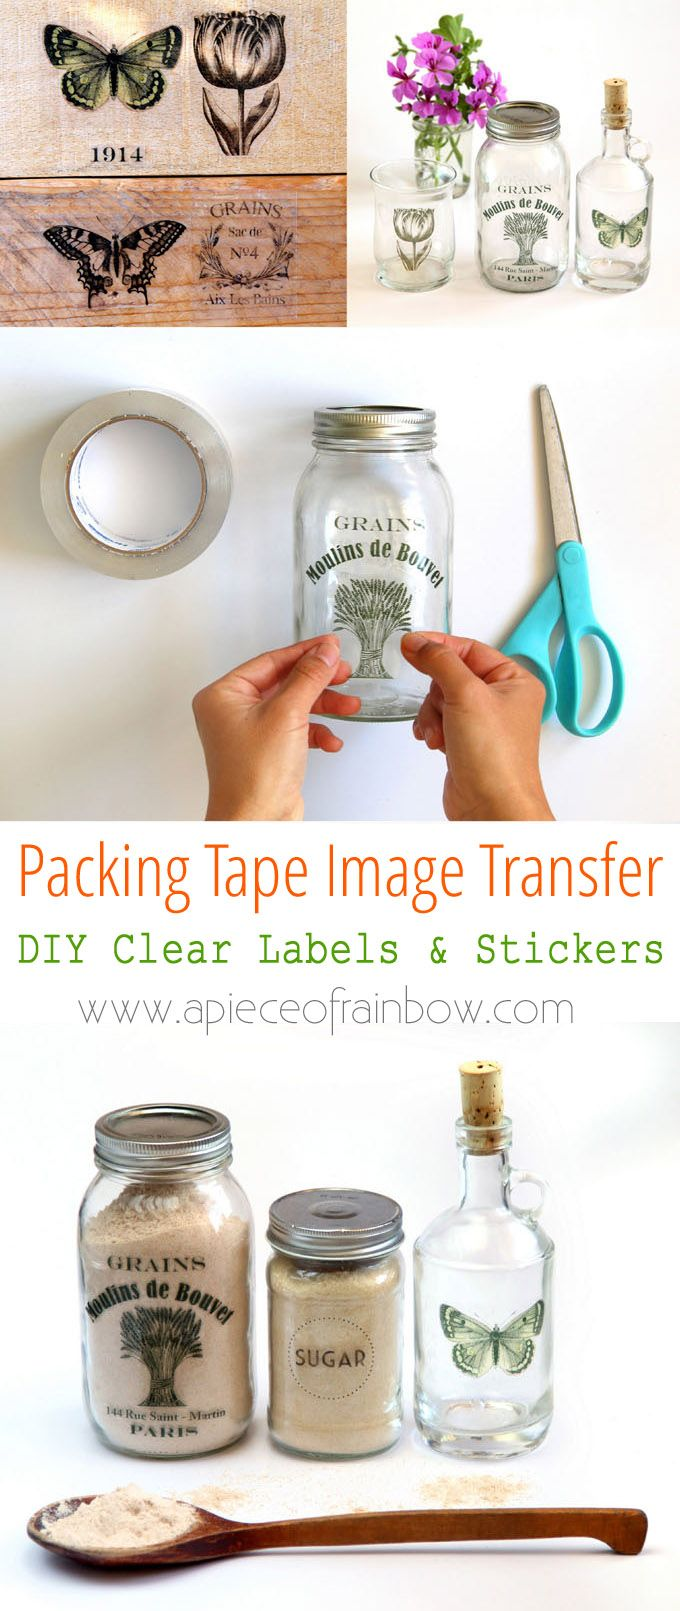 DIY Crafts : Make clear stickers using an easy packing tape